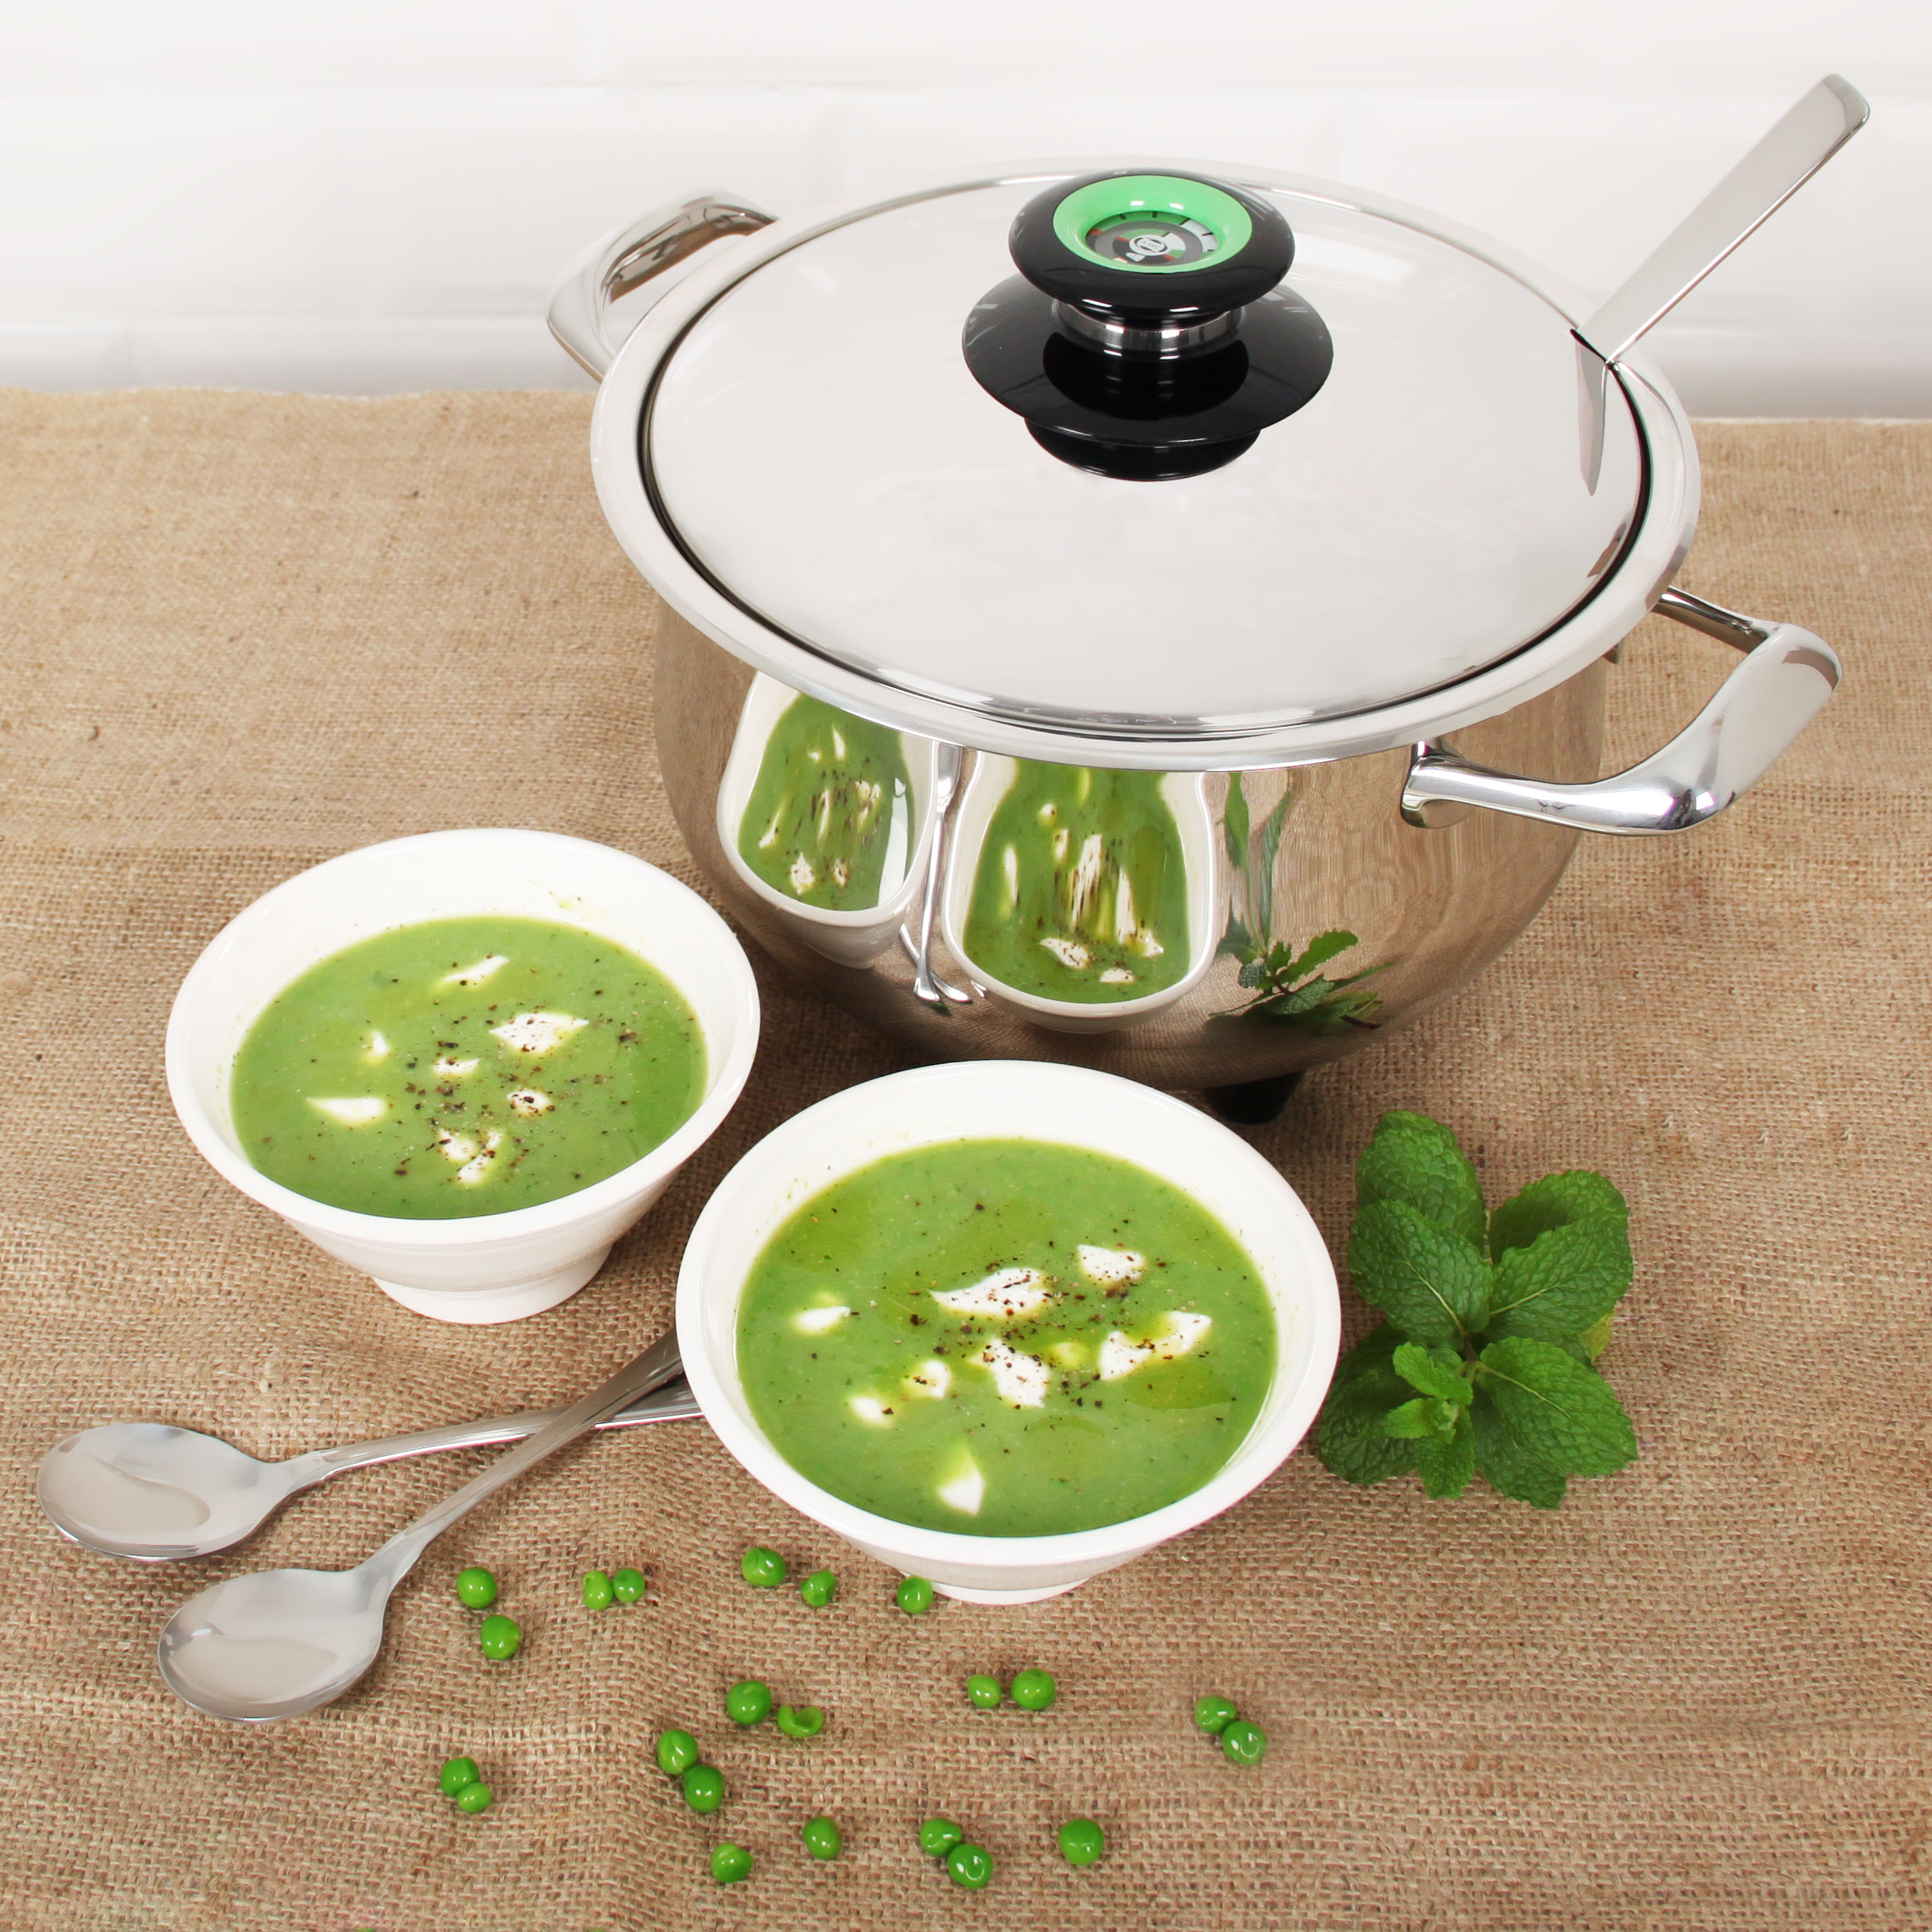 Pea & mint soup in the AMC Soup Tureen